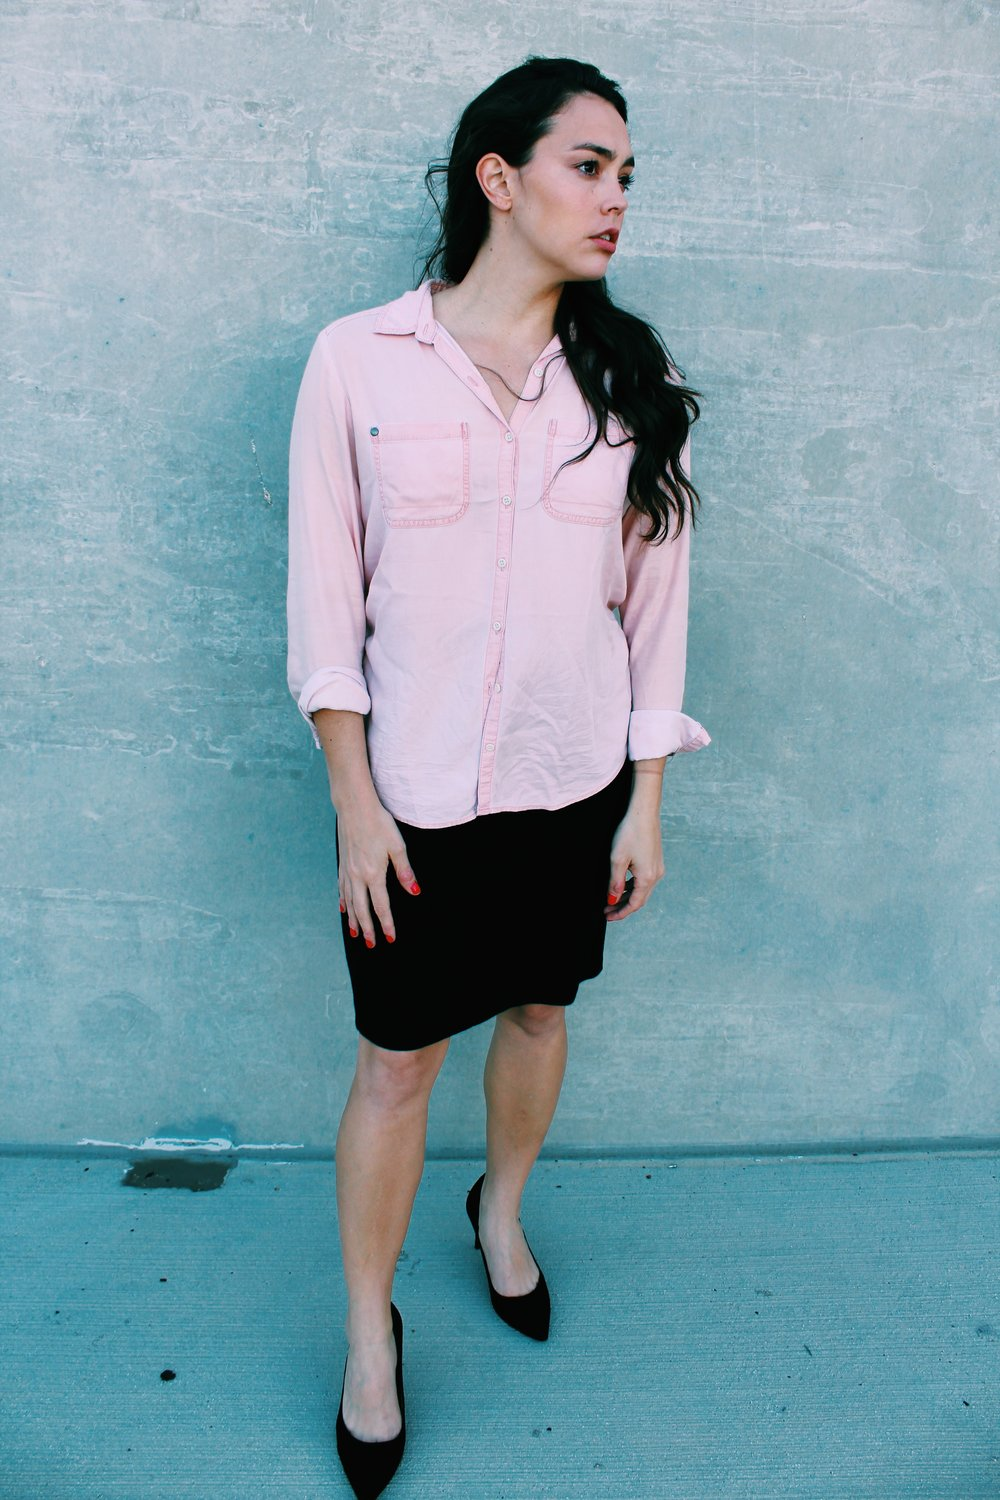 Greer Image Consulting - Blog - The Greer Guide to Style - Simple Styling Tricks - Pastel Top - Pastel Blouse - Pink Blouse - Business casual - Business Style